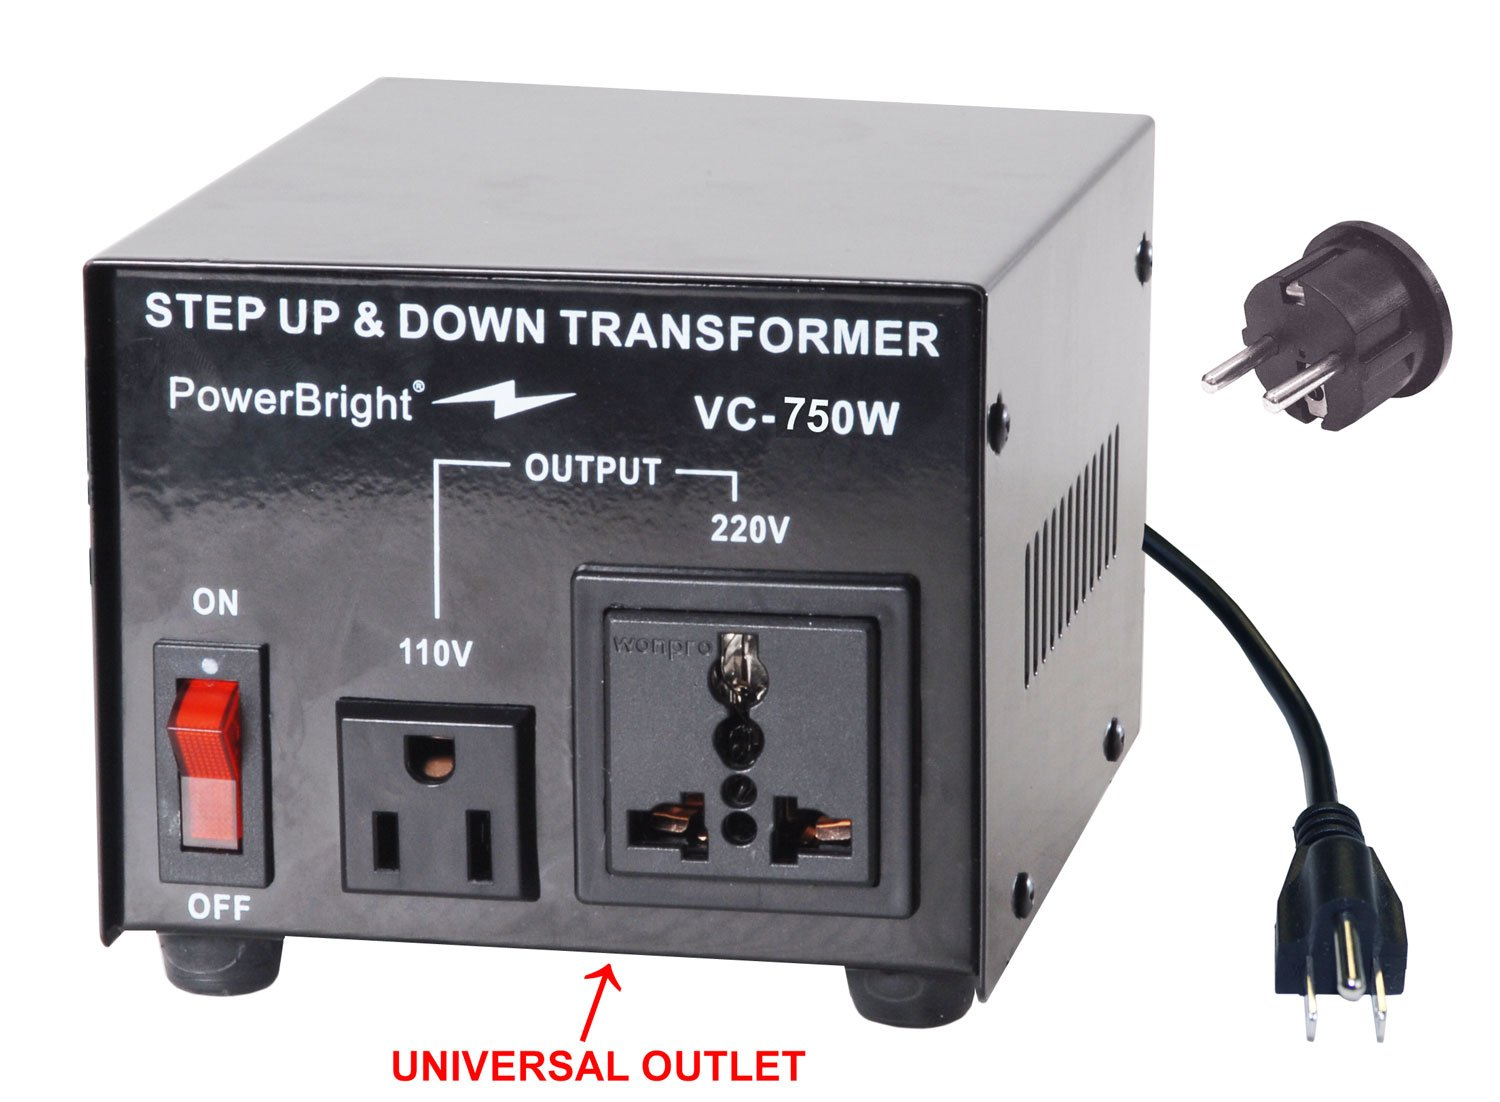 Power Bright Vc1500w Voltage Transformer 1500 Watt Step 240 Volt Ct Wiring Diagram Up Down Converter 110 120 220 Garden Outdoor